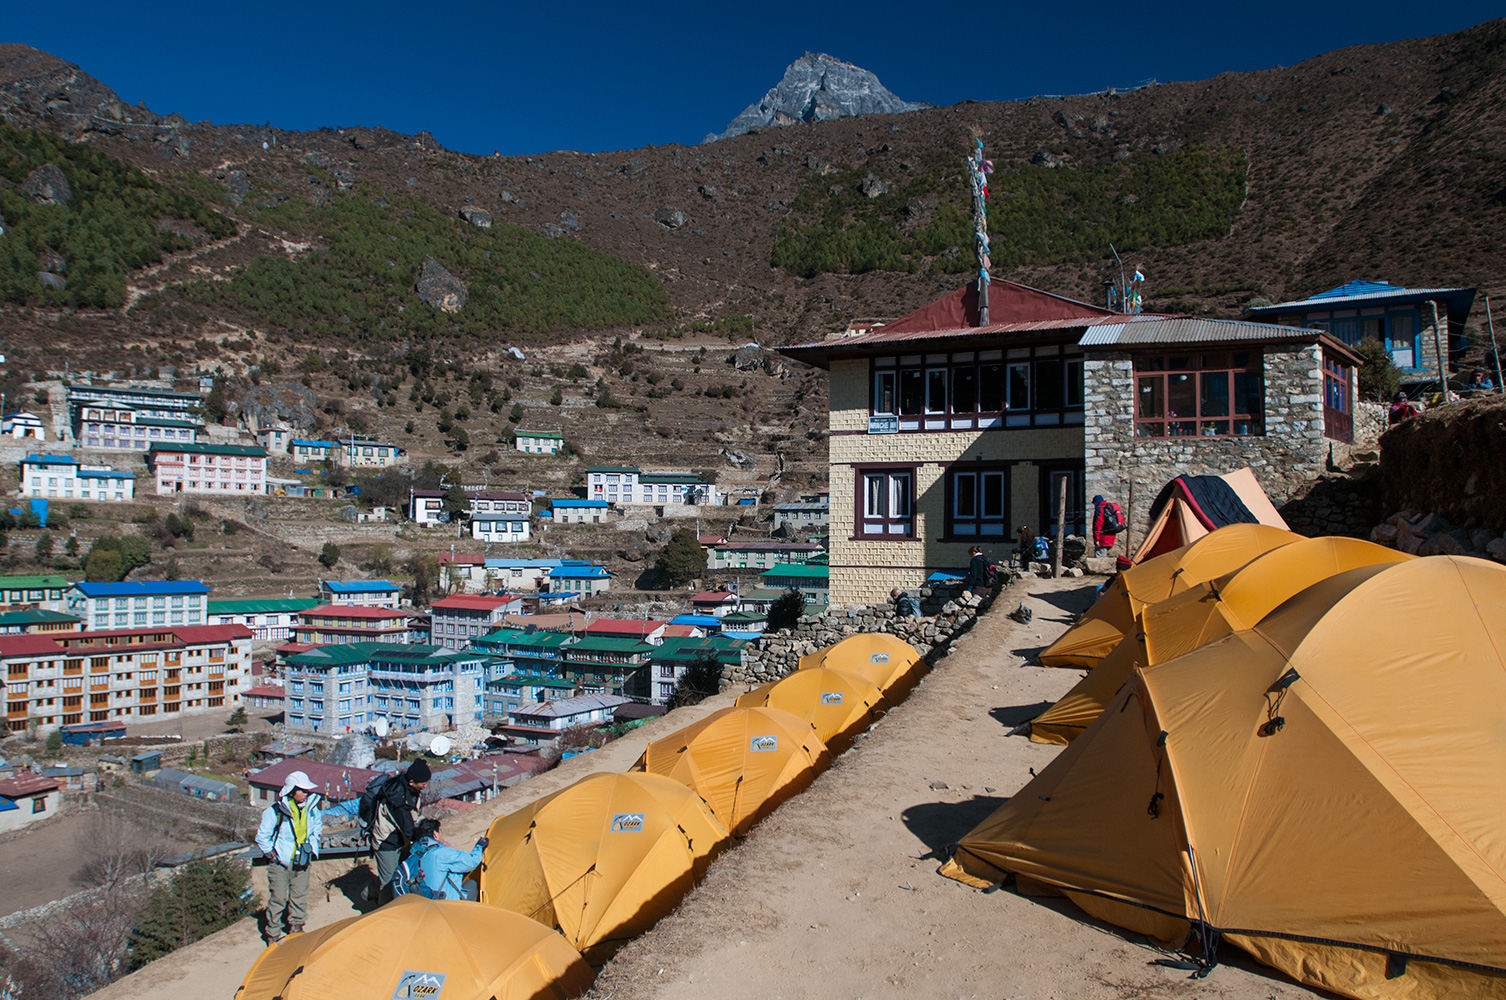 My trekking group camped on a hotel terrace at this gateway village to the Everest region in November 2008. It is at an altitude of 3440m. Namche Bazaar has grown rapidly in recent years as the burgeoning trekking industry bring ever increasing numbers of toursists to the area. Many visitors spend two or tree nights here to acclimatise to the altitude pefore proceeding up valley.Nikon D300, 17-35mm